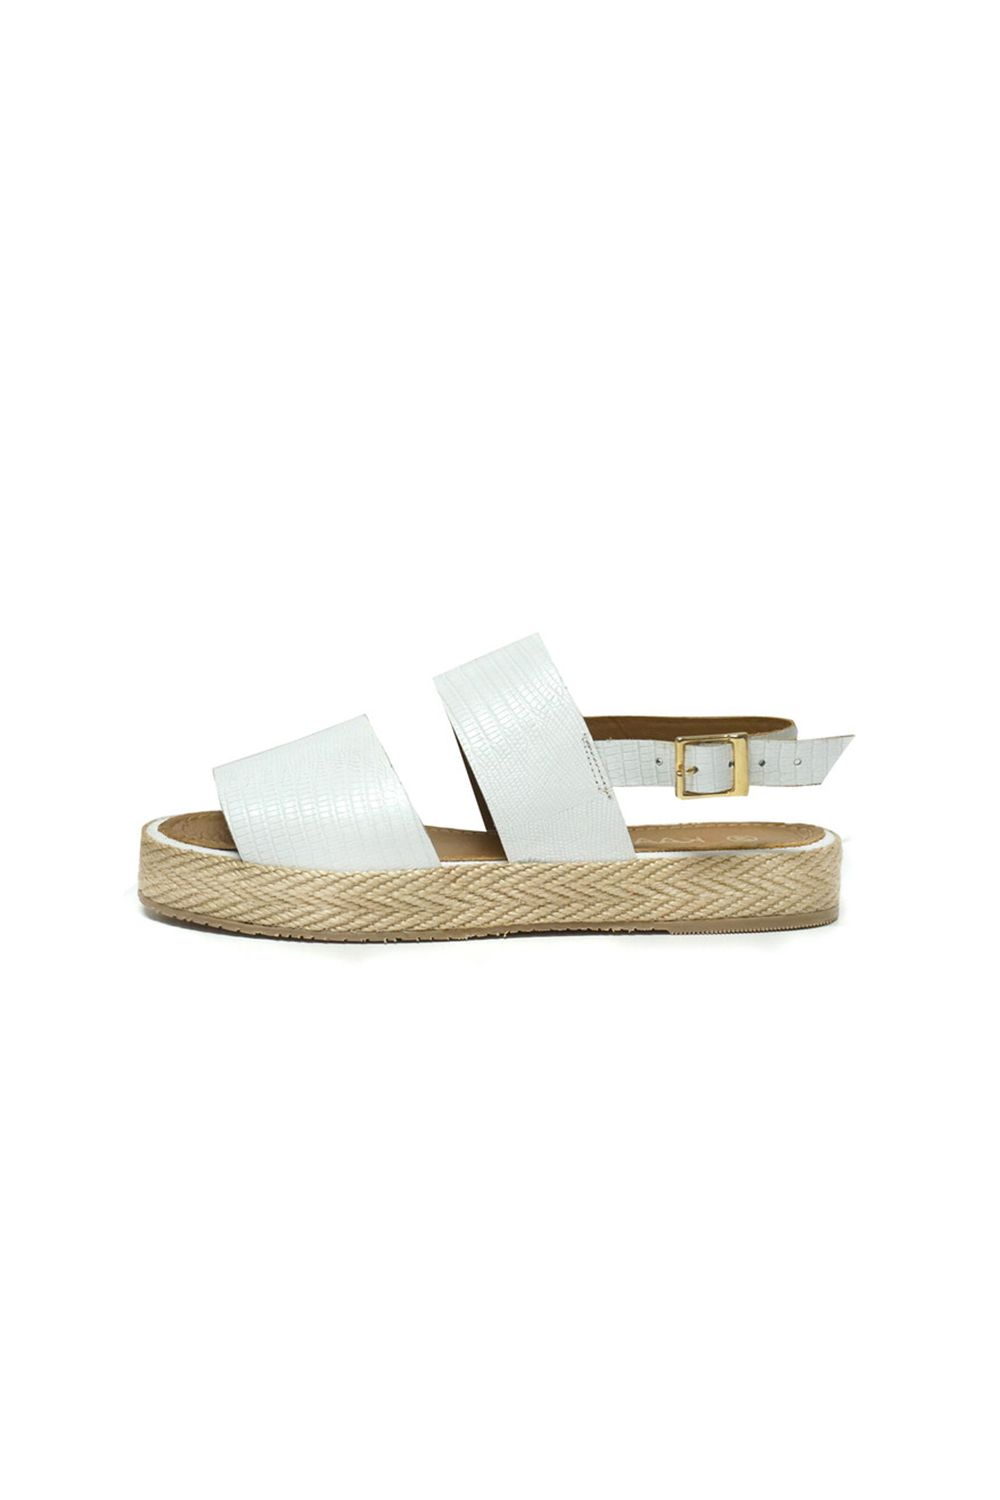 "<p>Kaanas buckle espadrilles, $109, <a href=""http://kaanas.com/collections/women/products/new-nice-white"">kaanas.com</a>.</p>"